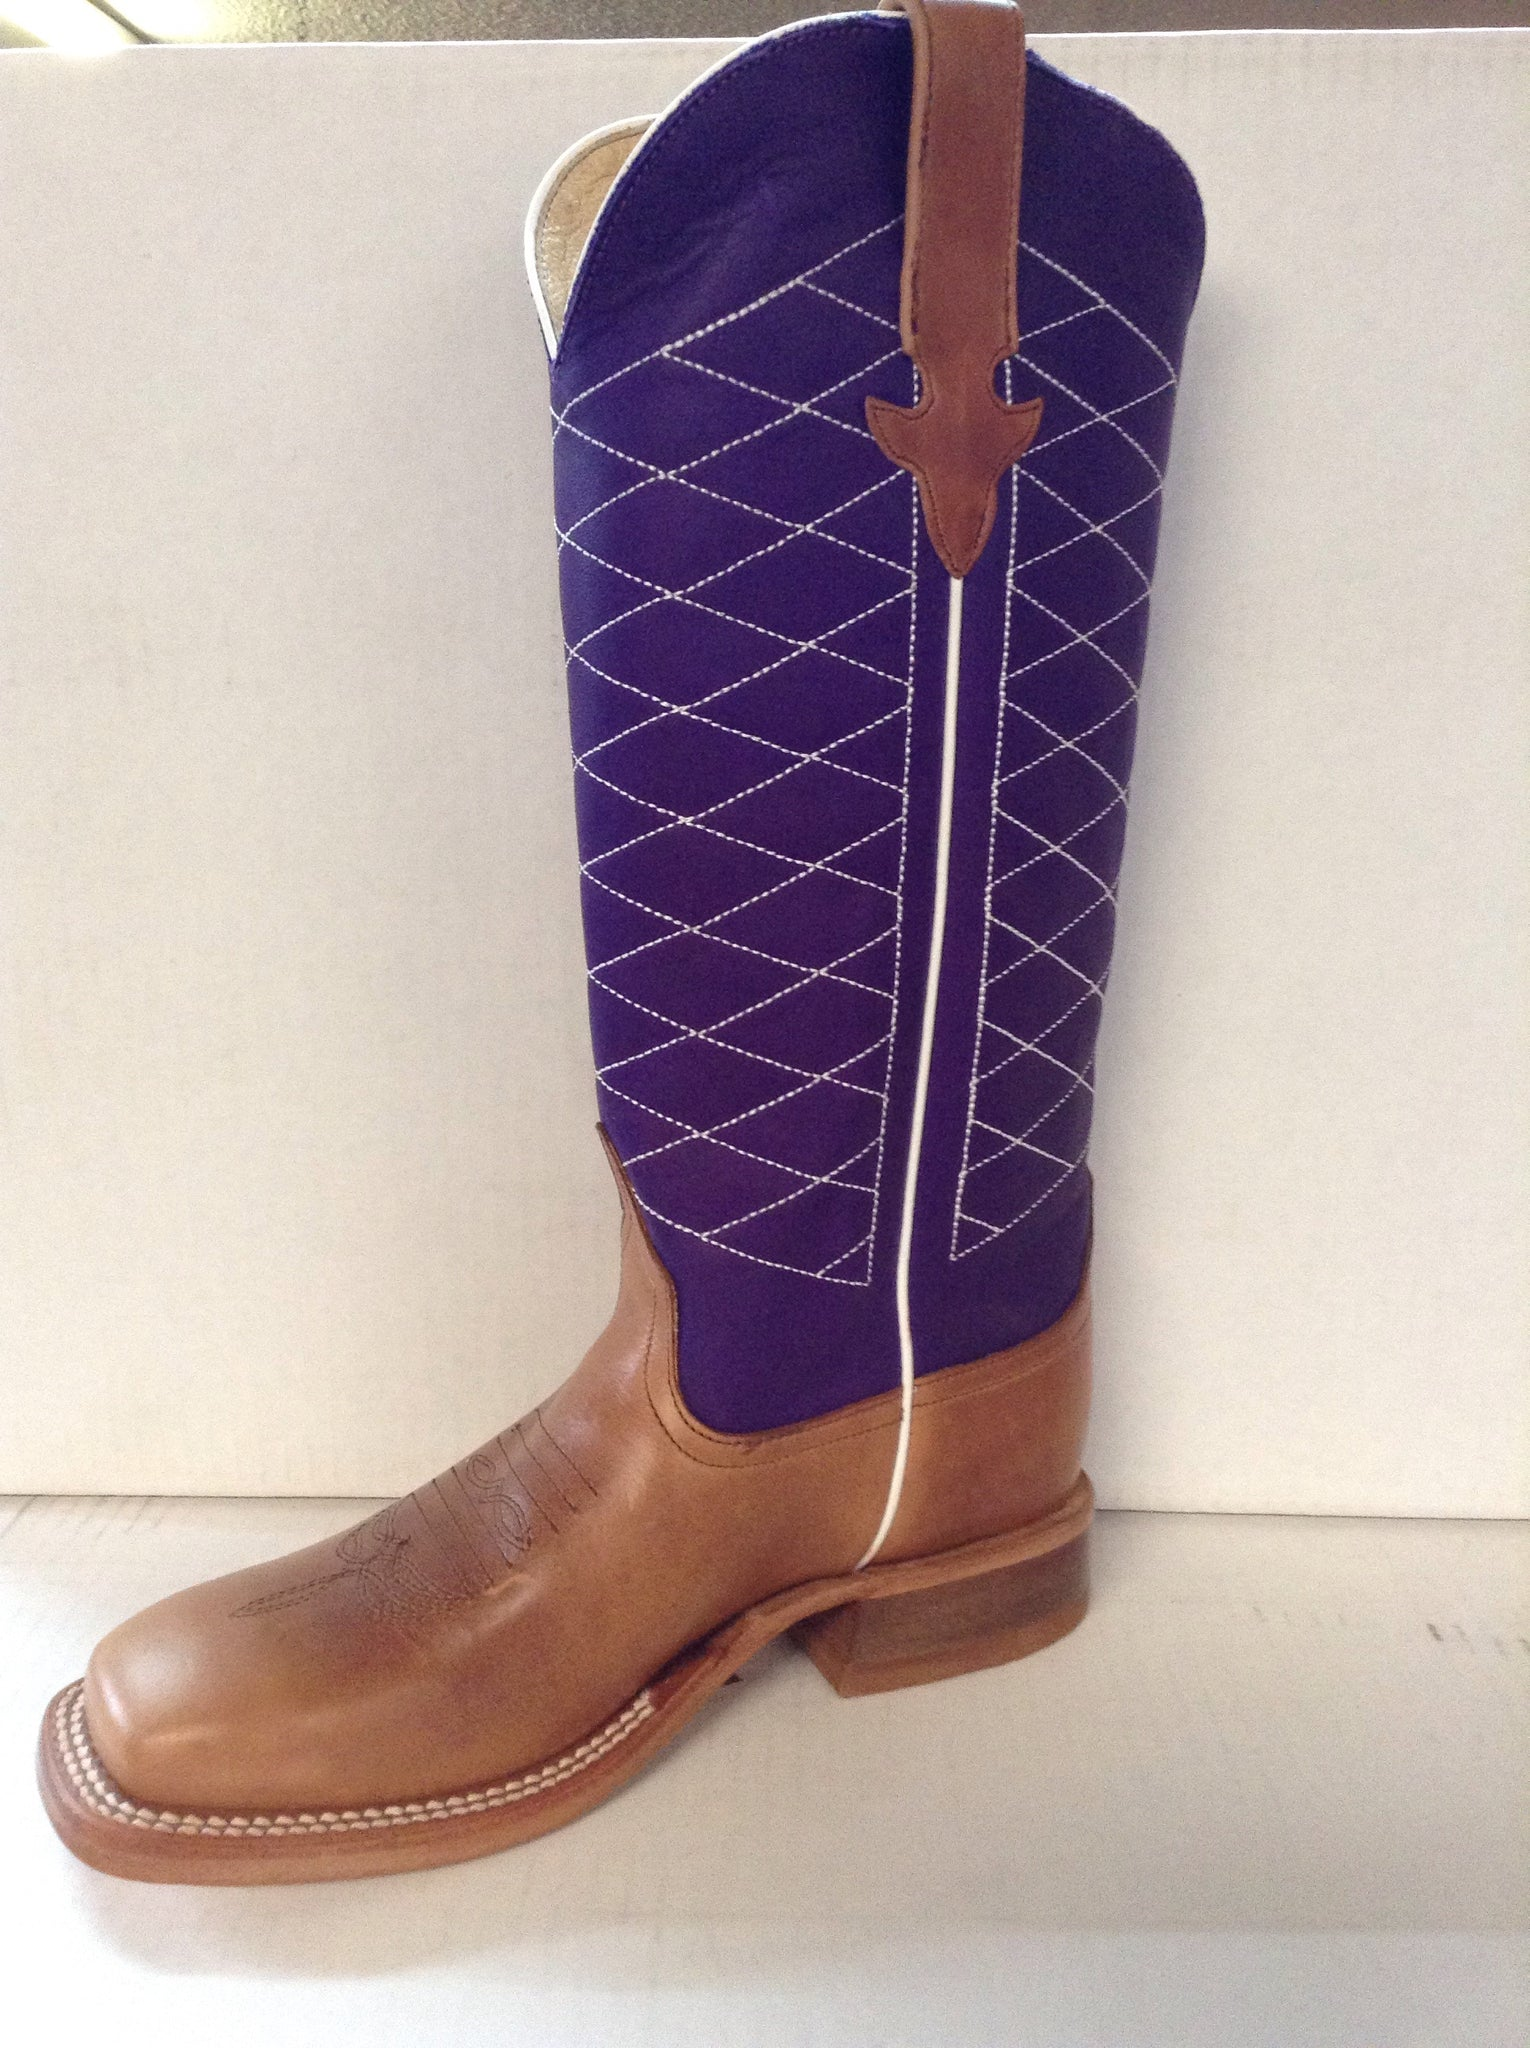 Kids Boots - Anderson Bean Kids Purple Boot K1506 - Anderson Bean - Mock Brothers Saddlery and Western Wear